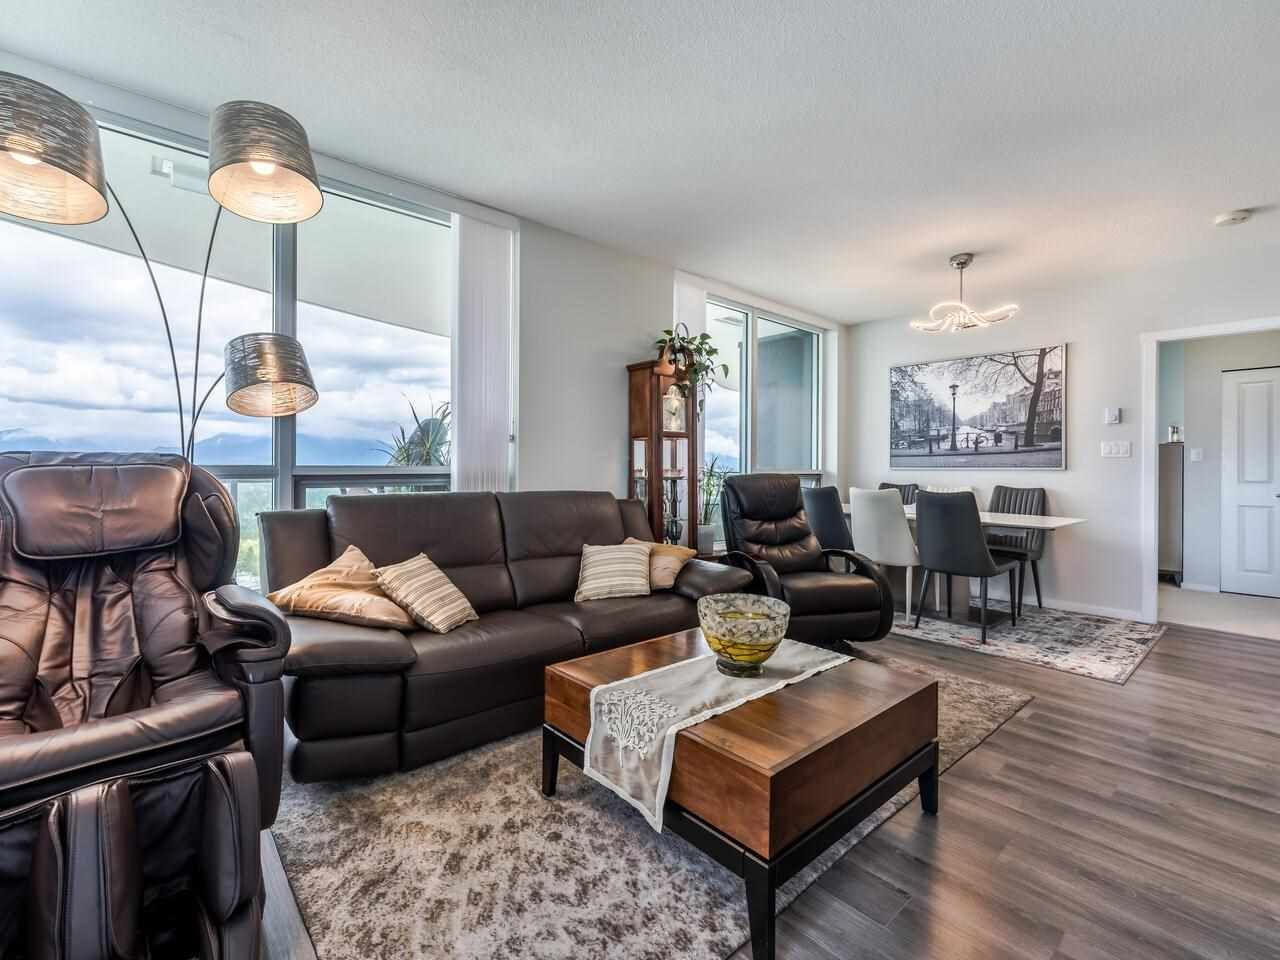 """Main Photo: 2703 6638 DUNBLANE Avenue in Burnaby: Metrotown Condo for sale in """"Midori"""" (Burnaby South)  : MLS®# R2581588"""